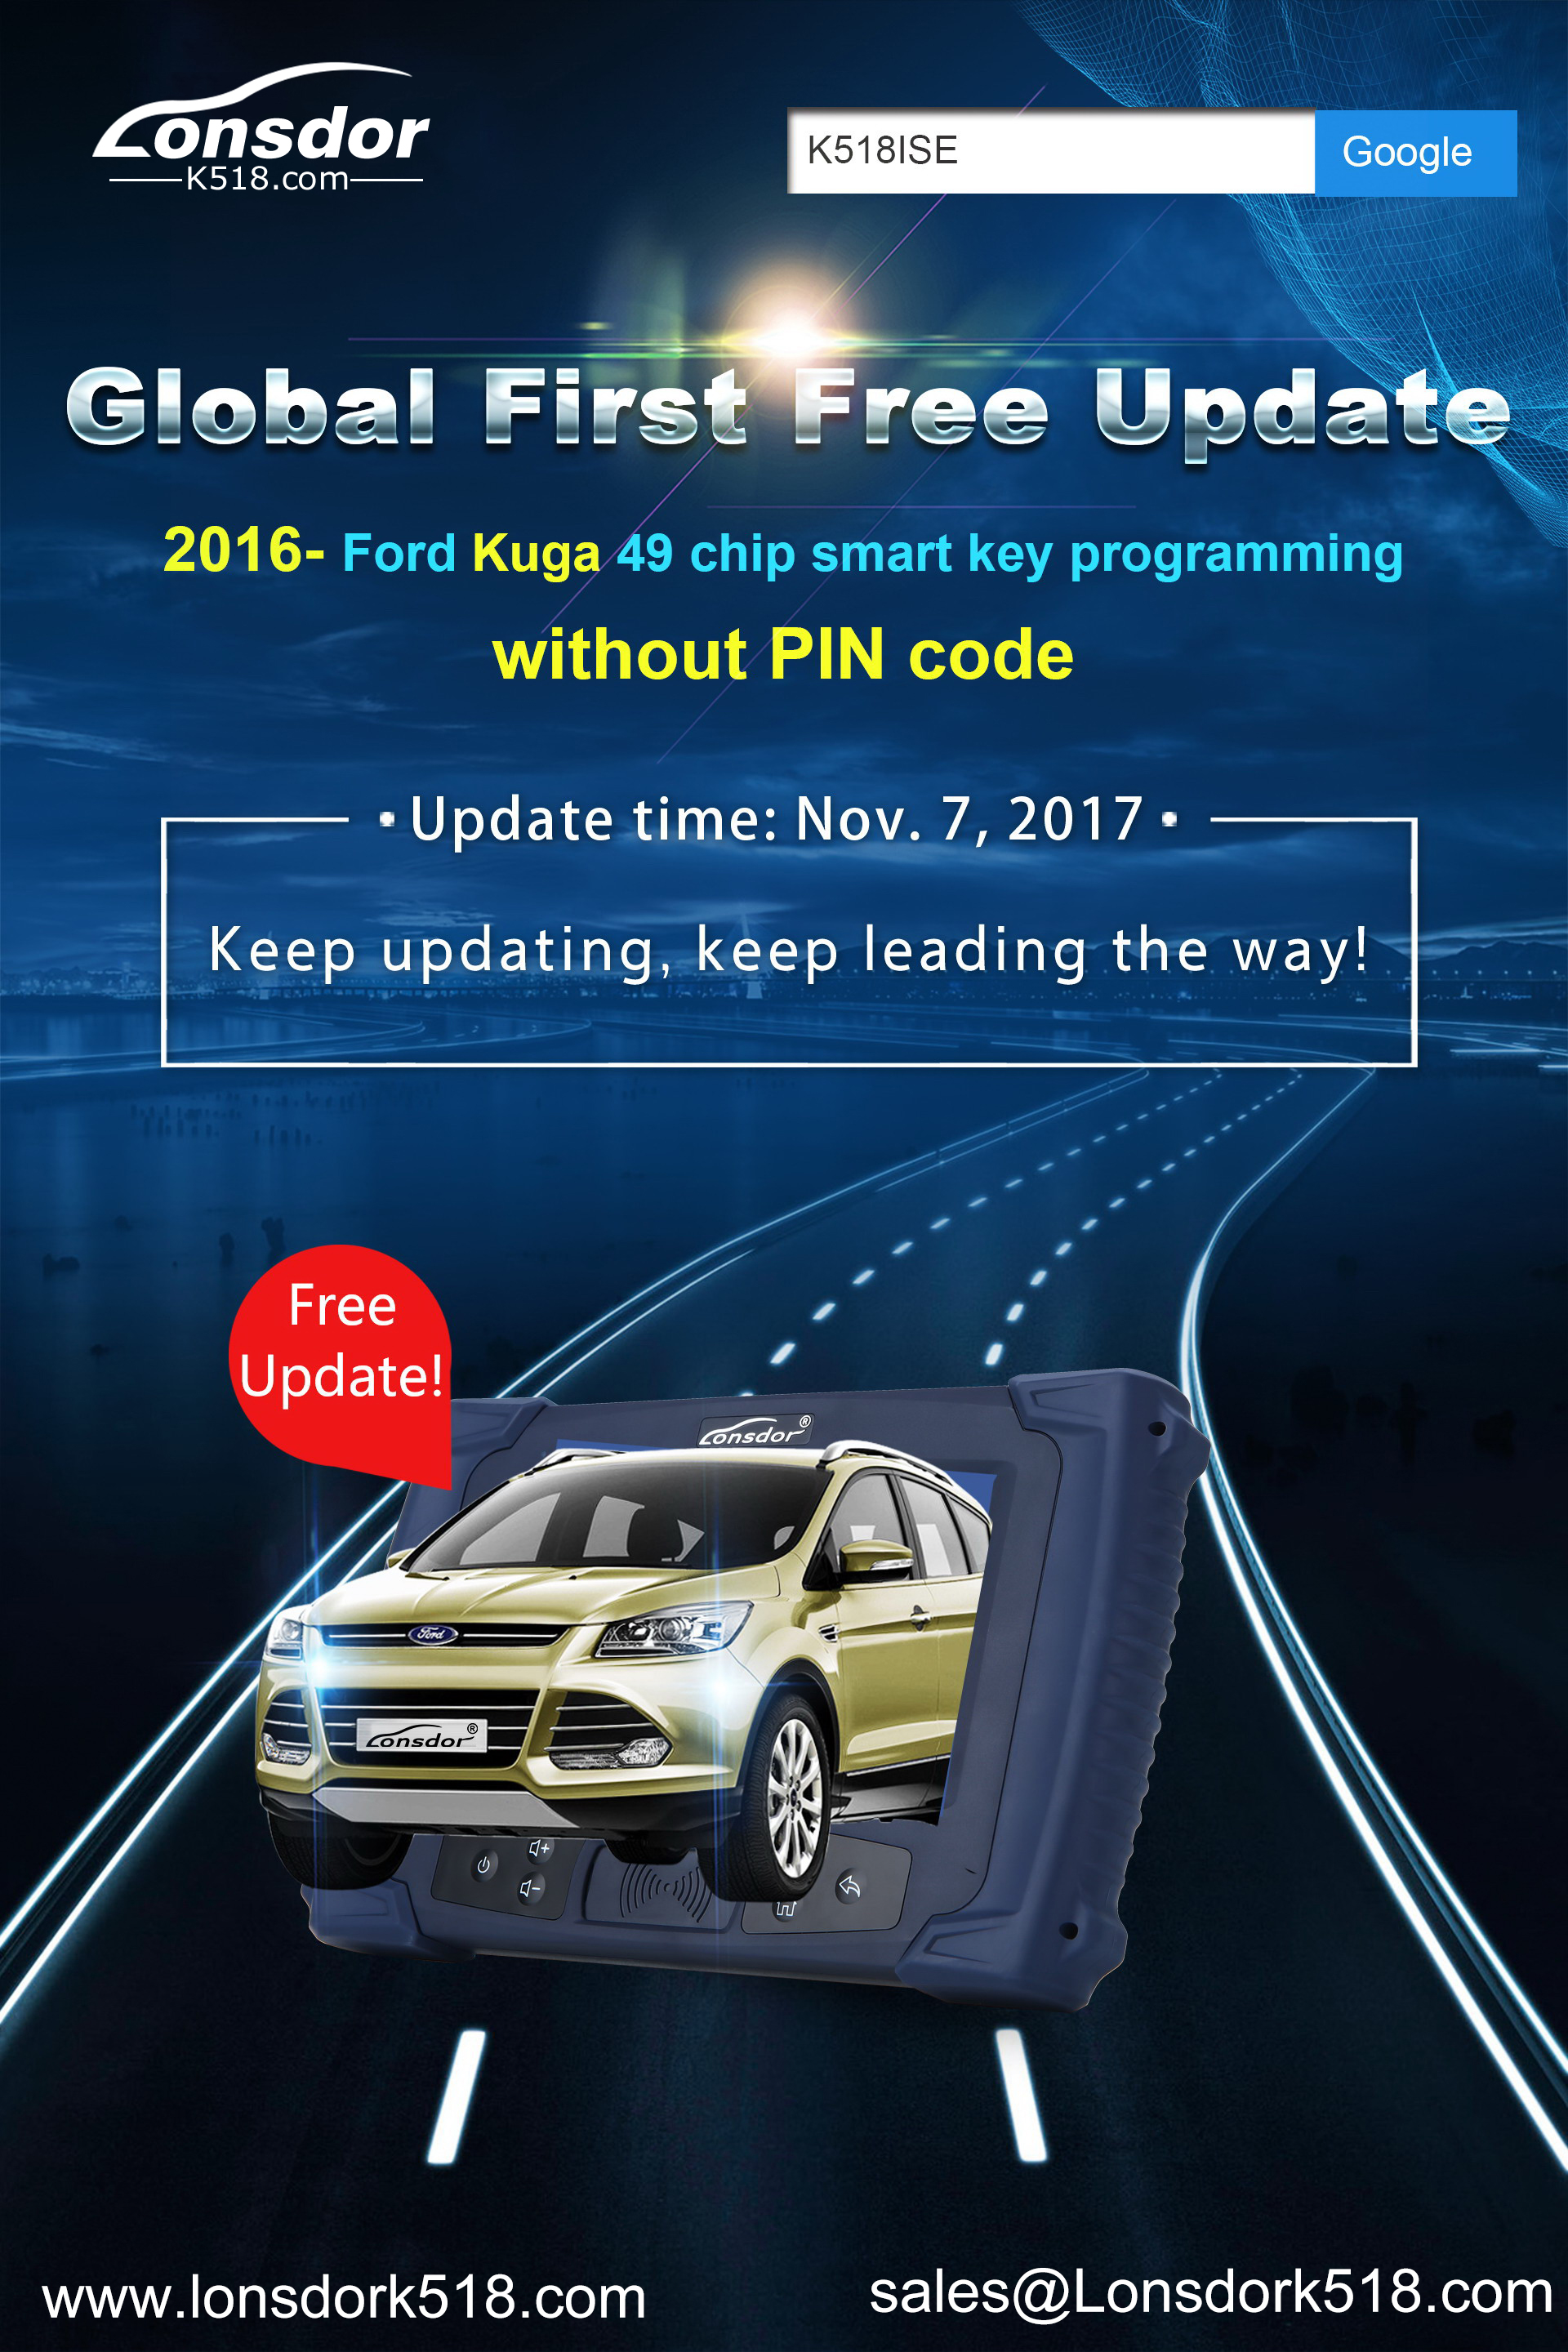 Free update for 2016 Ford Kuga